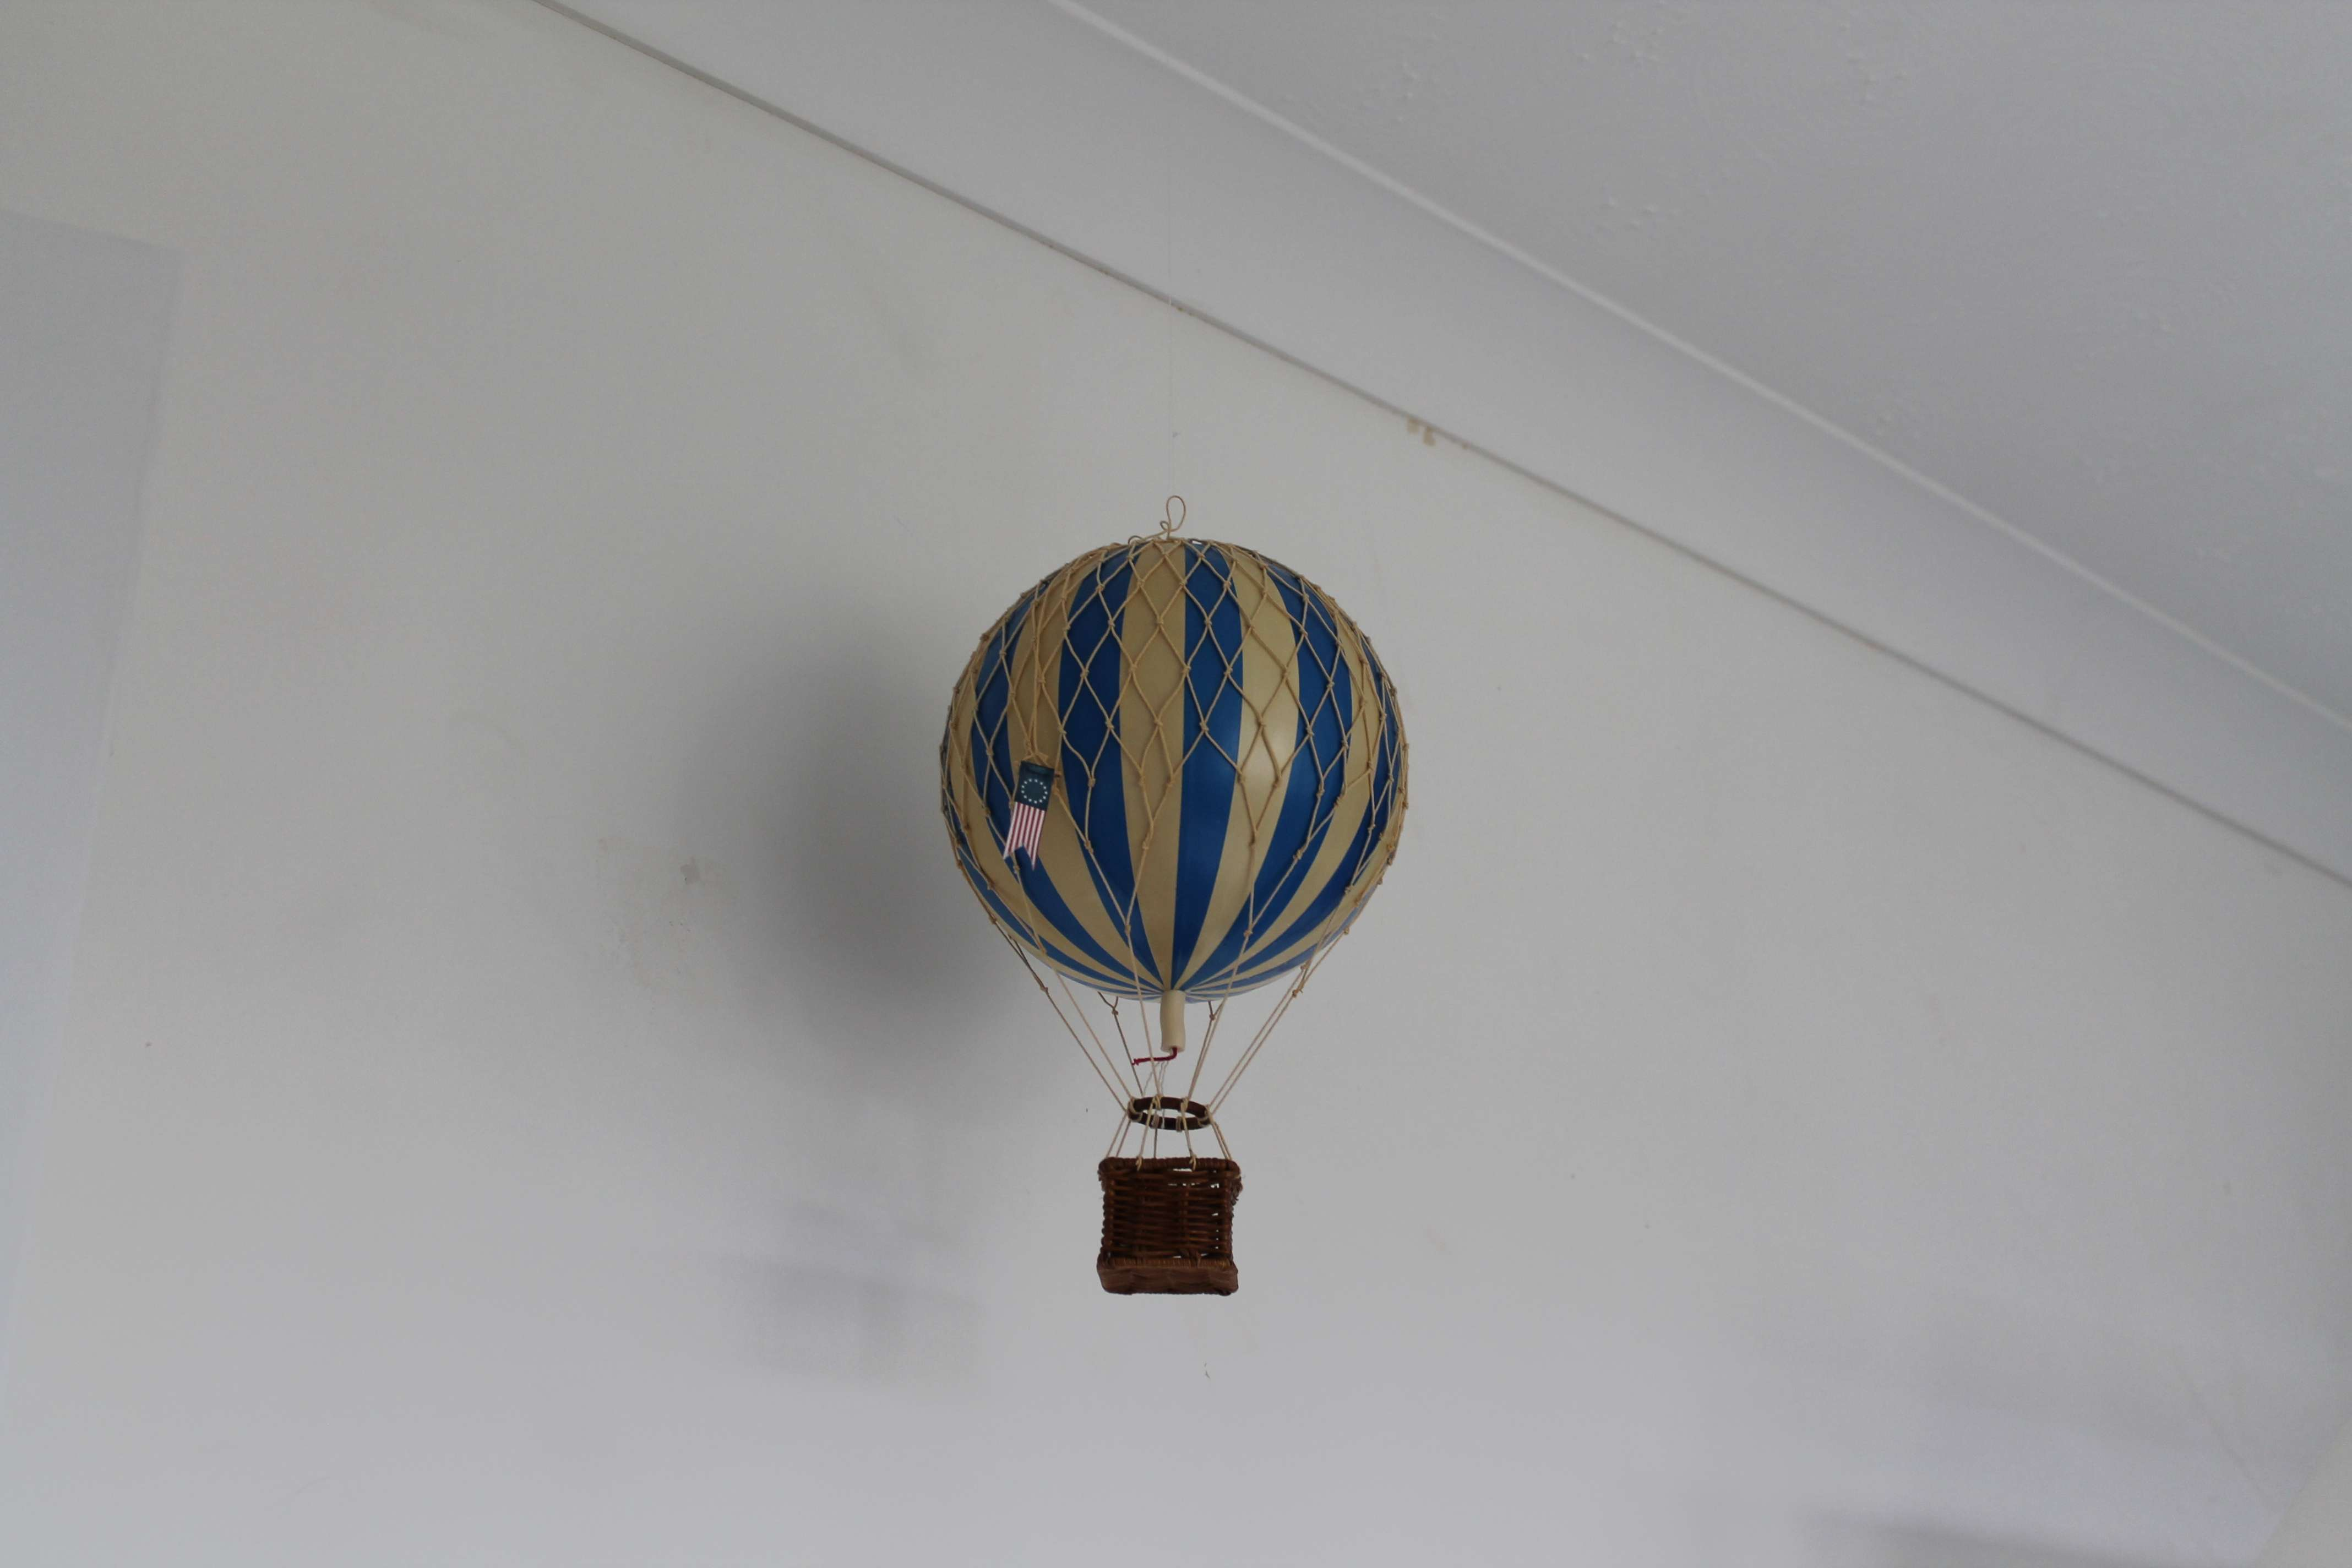 Themed Kept Their Hanging Hot Air Balloon Model John Lewis